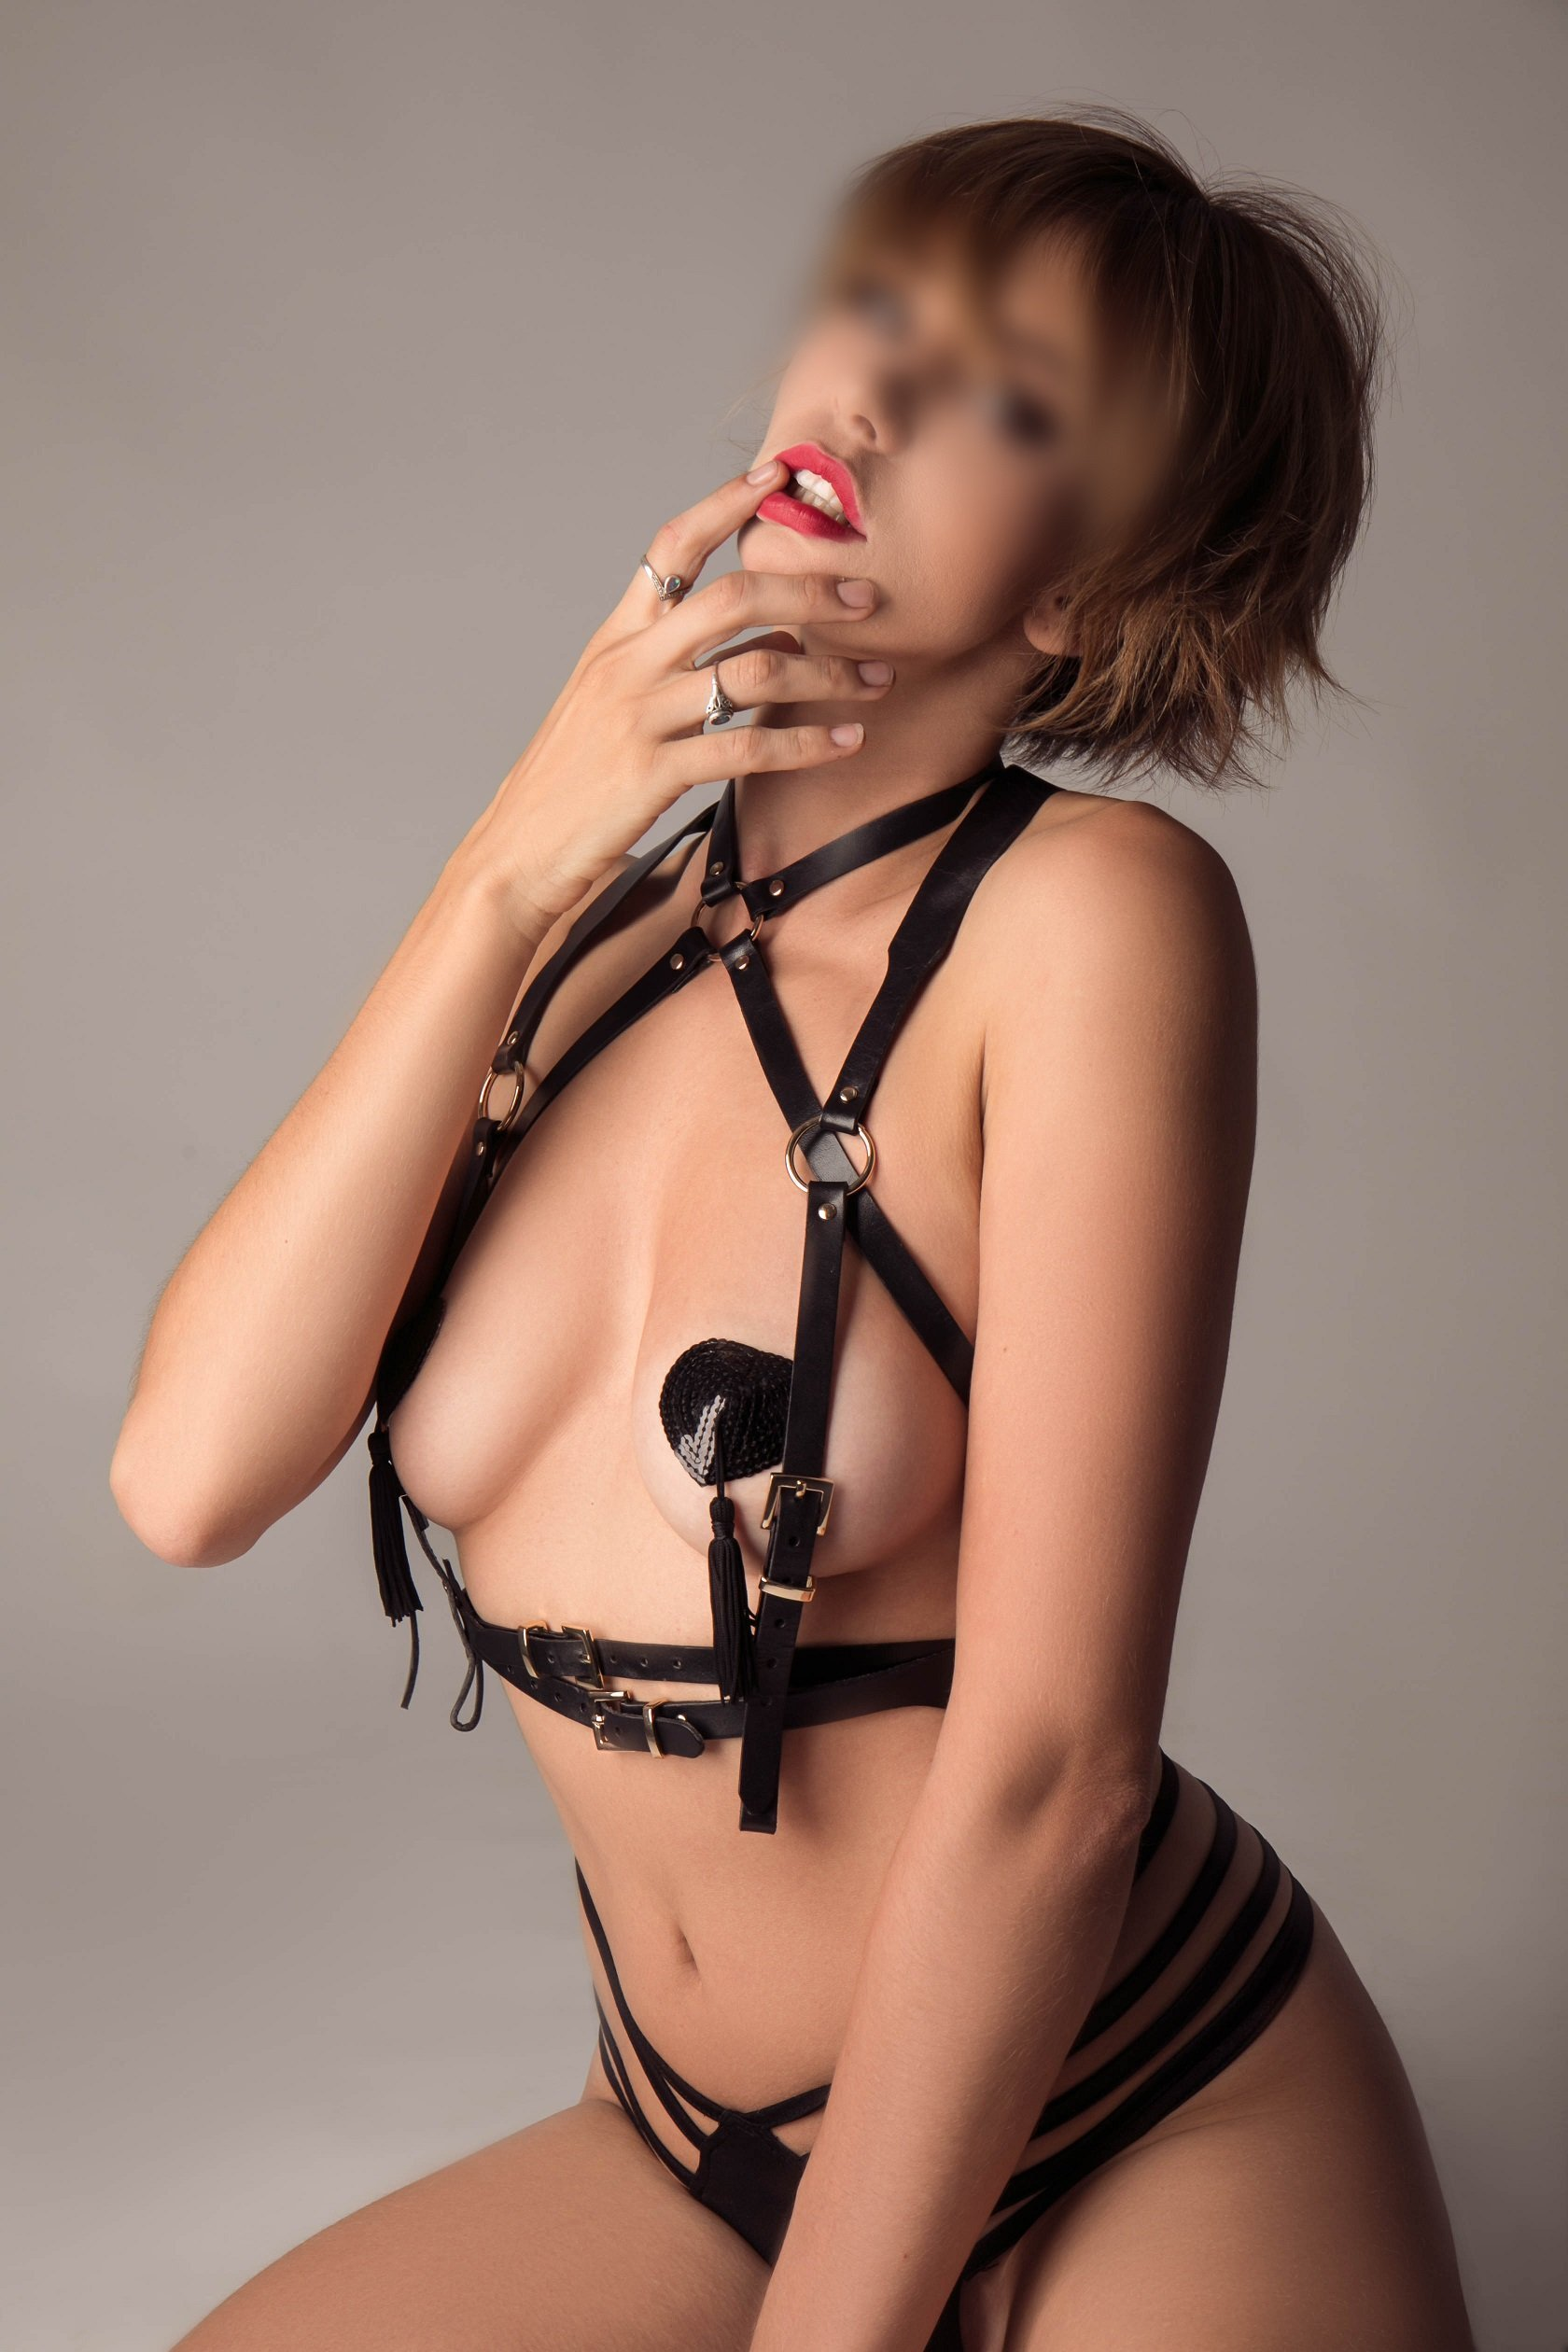 Hot petite, Melbourne Escort, model looks